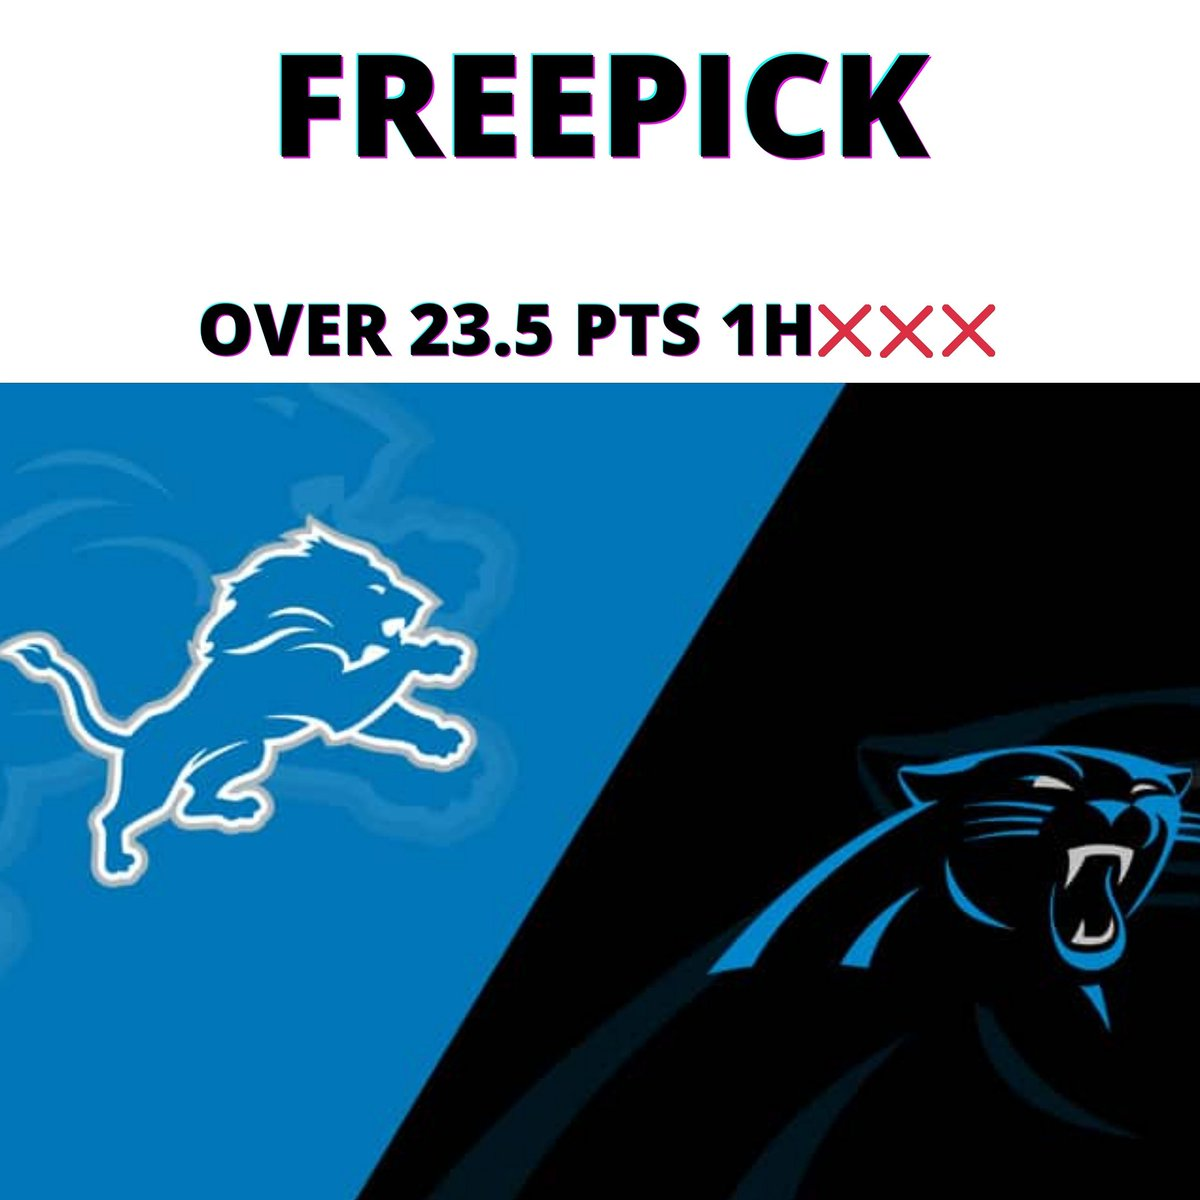 NFL SEMANA 11  FREEPICK  LIONS VS PANTHERS  OVER 23.5 PTS 1H❌❌❌  (-115)  #ApuestoConFuster https://t.co/TO9bJRTlLv